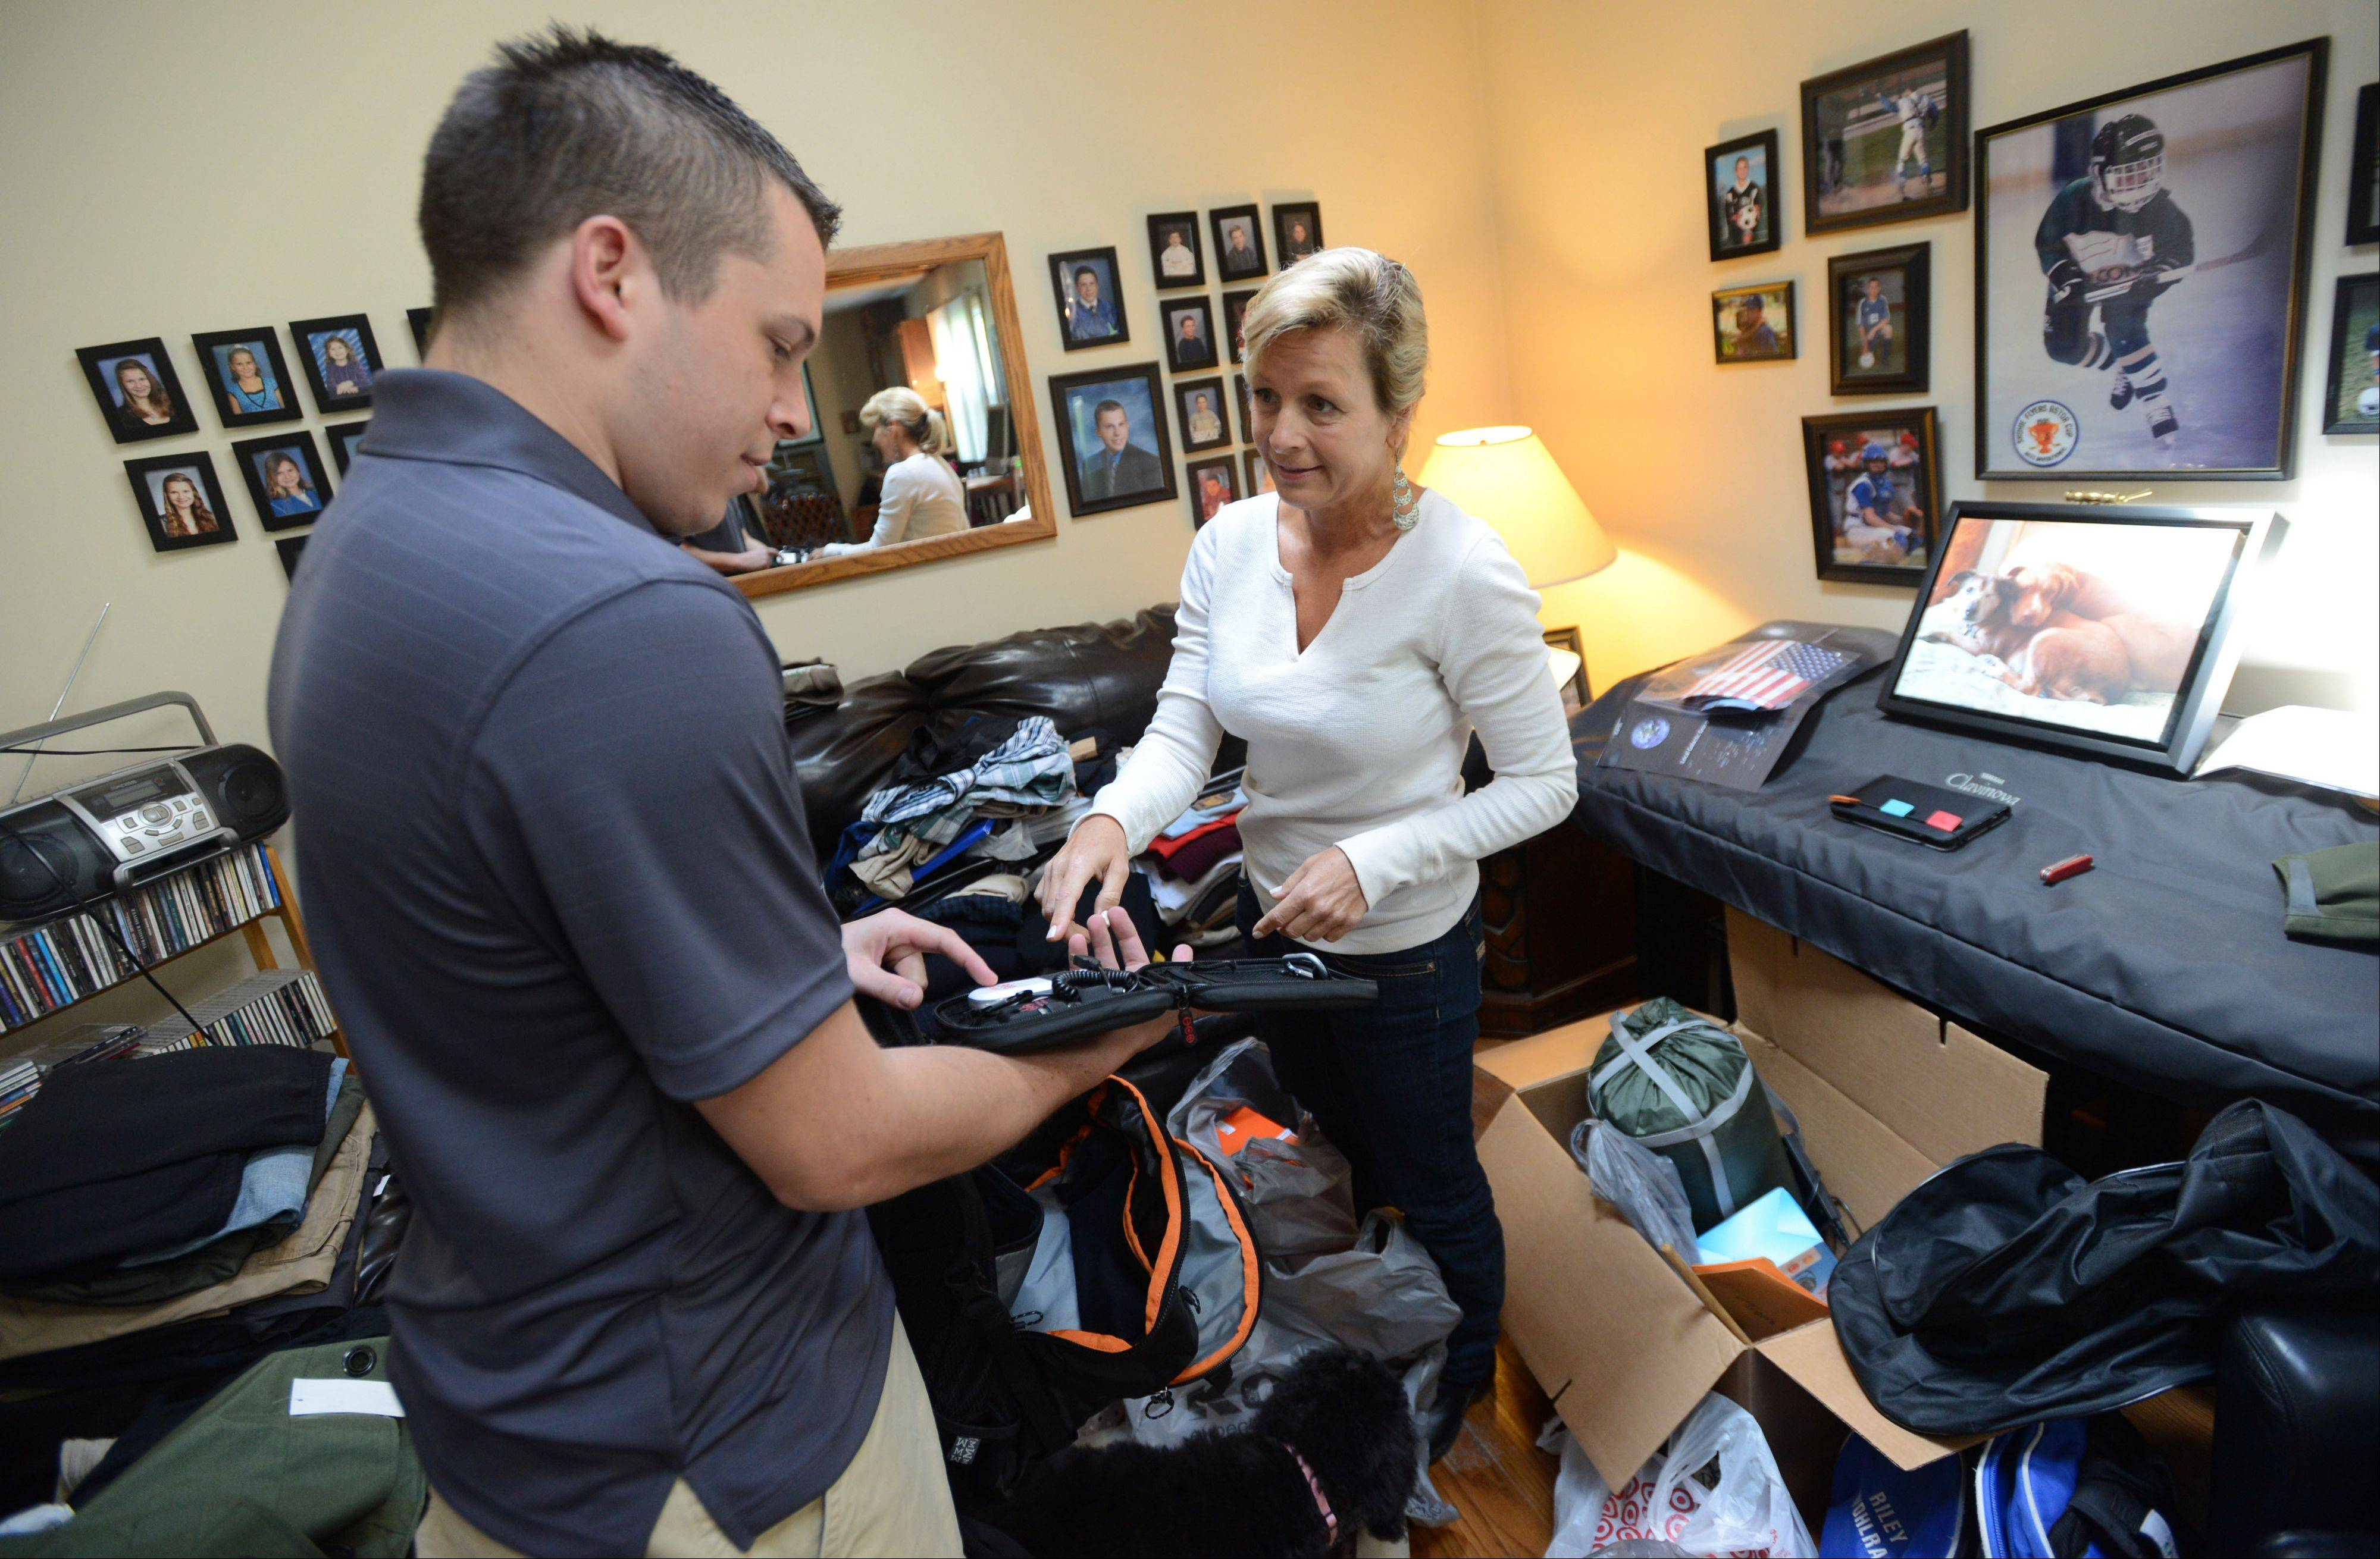 Travis Wohlrab shows his mom, Linda, a solar charging device for his cellphone as he packs for his trip to Africa for the Peace Corps.